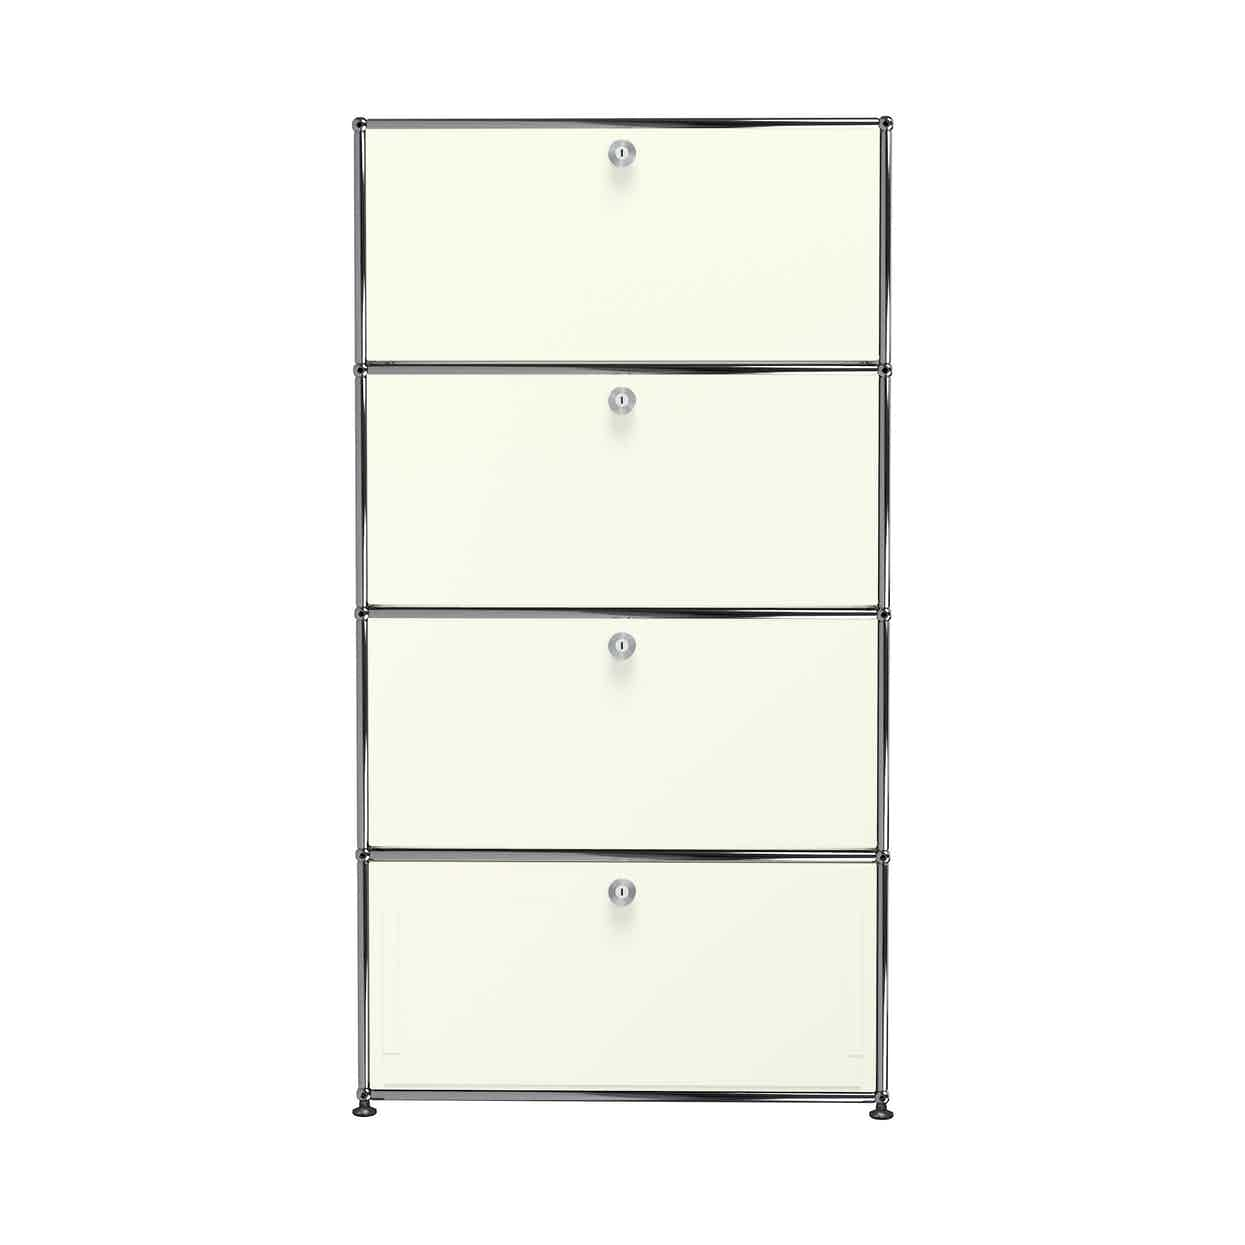 Usm-quick-ship-Haller-Storage-S118A-white-haute-living